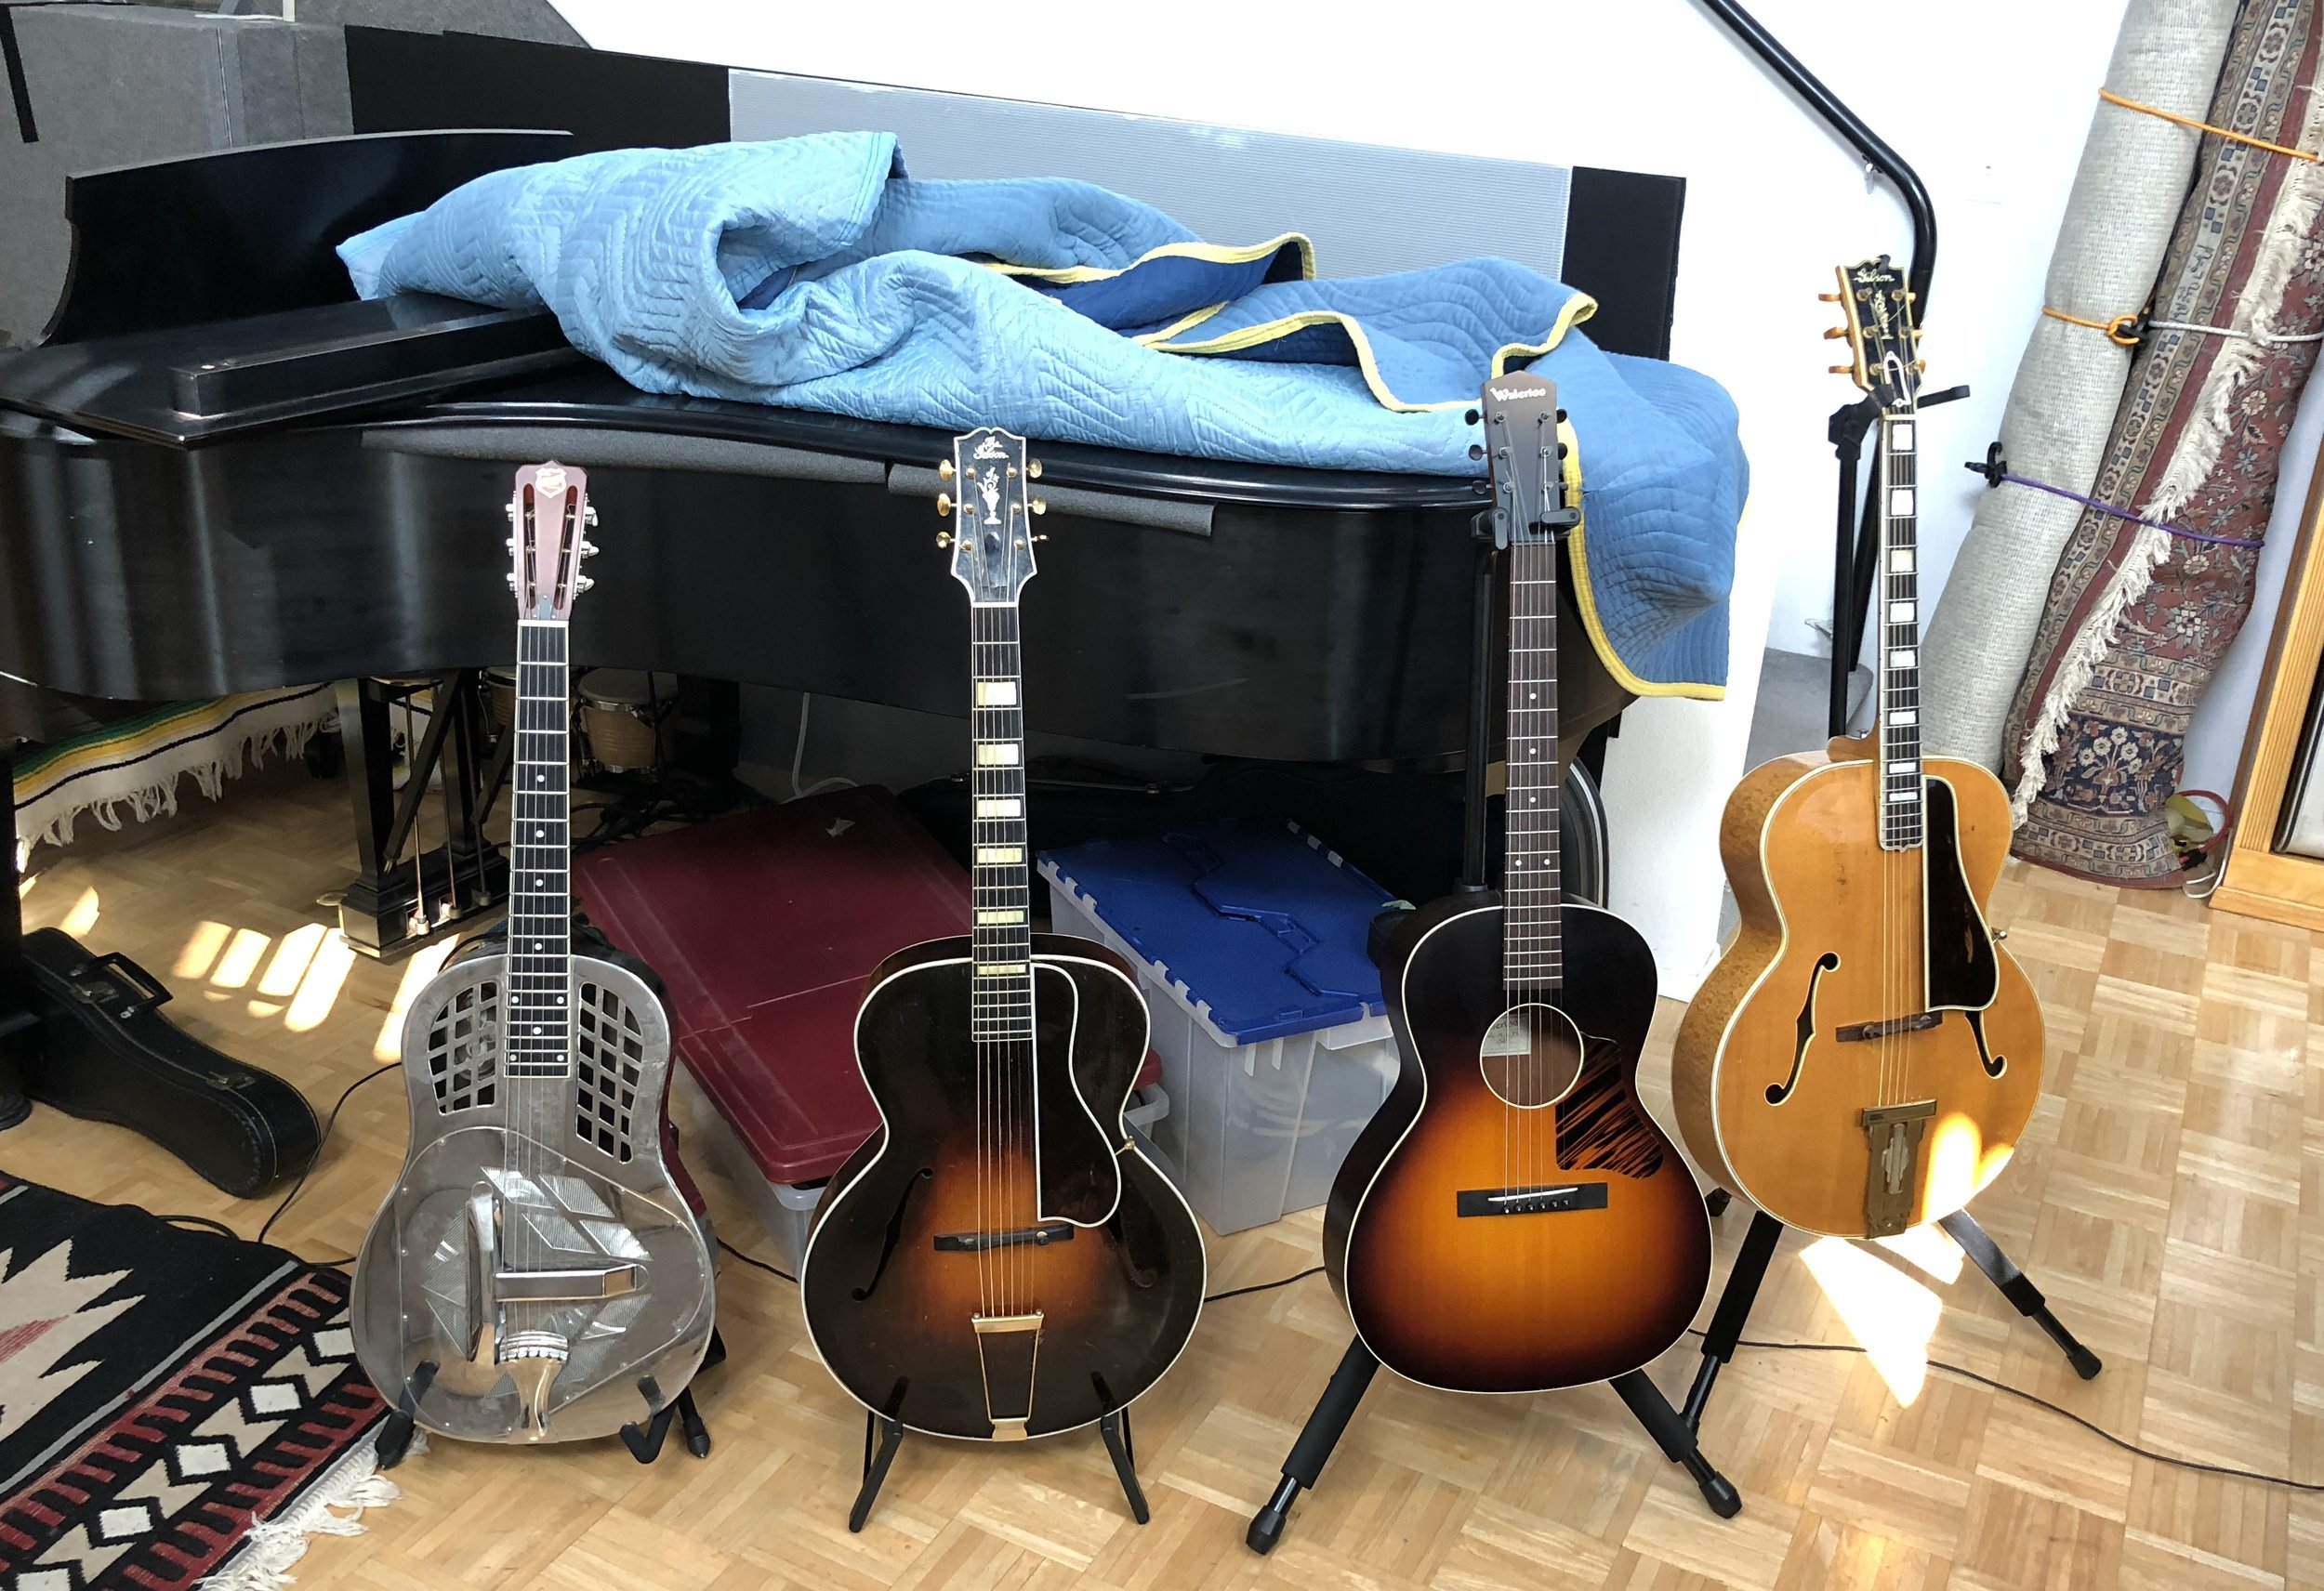 2012 National Style 1 Tricone, 1932 Gibson L-5, 2016 Waterloo WL-14LTR, and a 1939 Gibson L-5